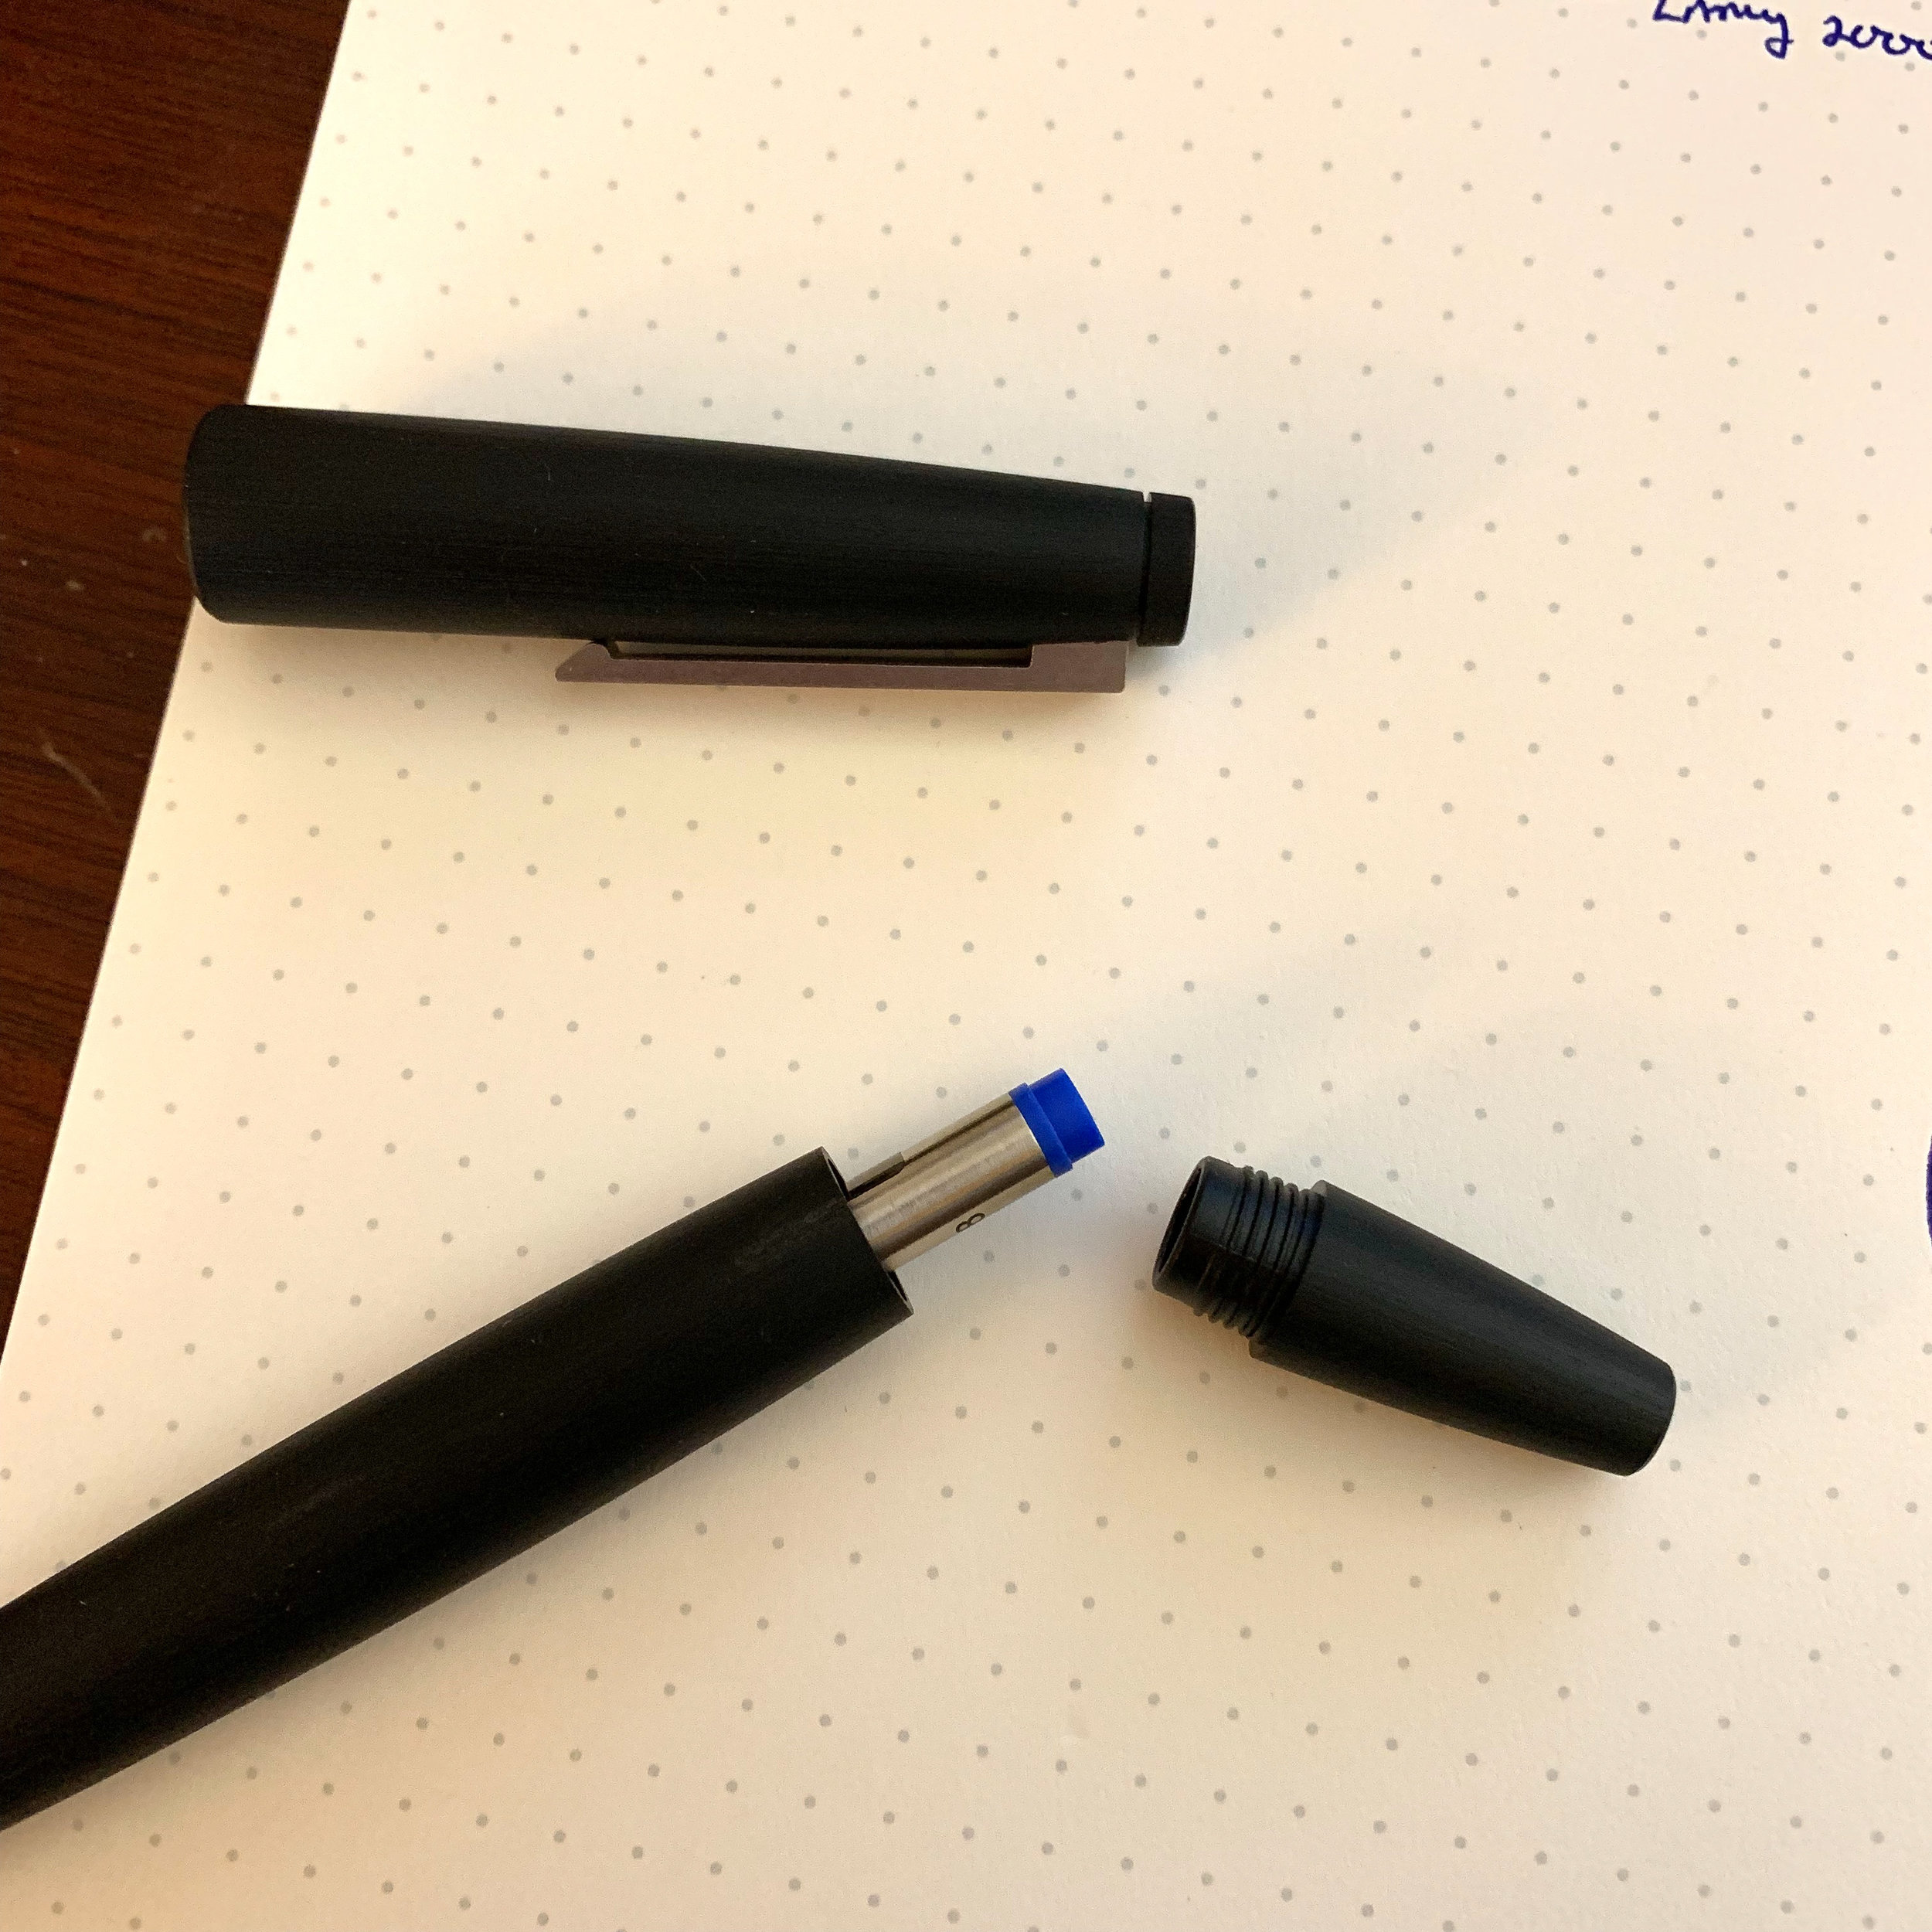 Swapping out the rollerball cartridge is pretty simple: just unscrew the back end of the pen and drop in the refill.